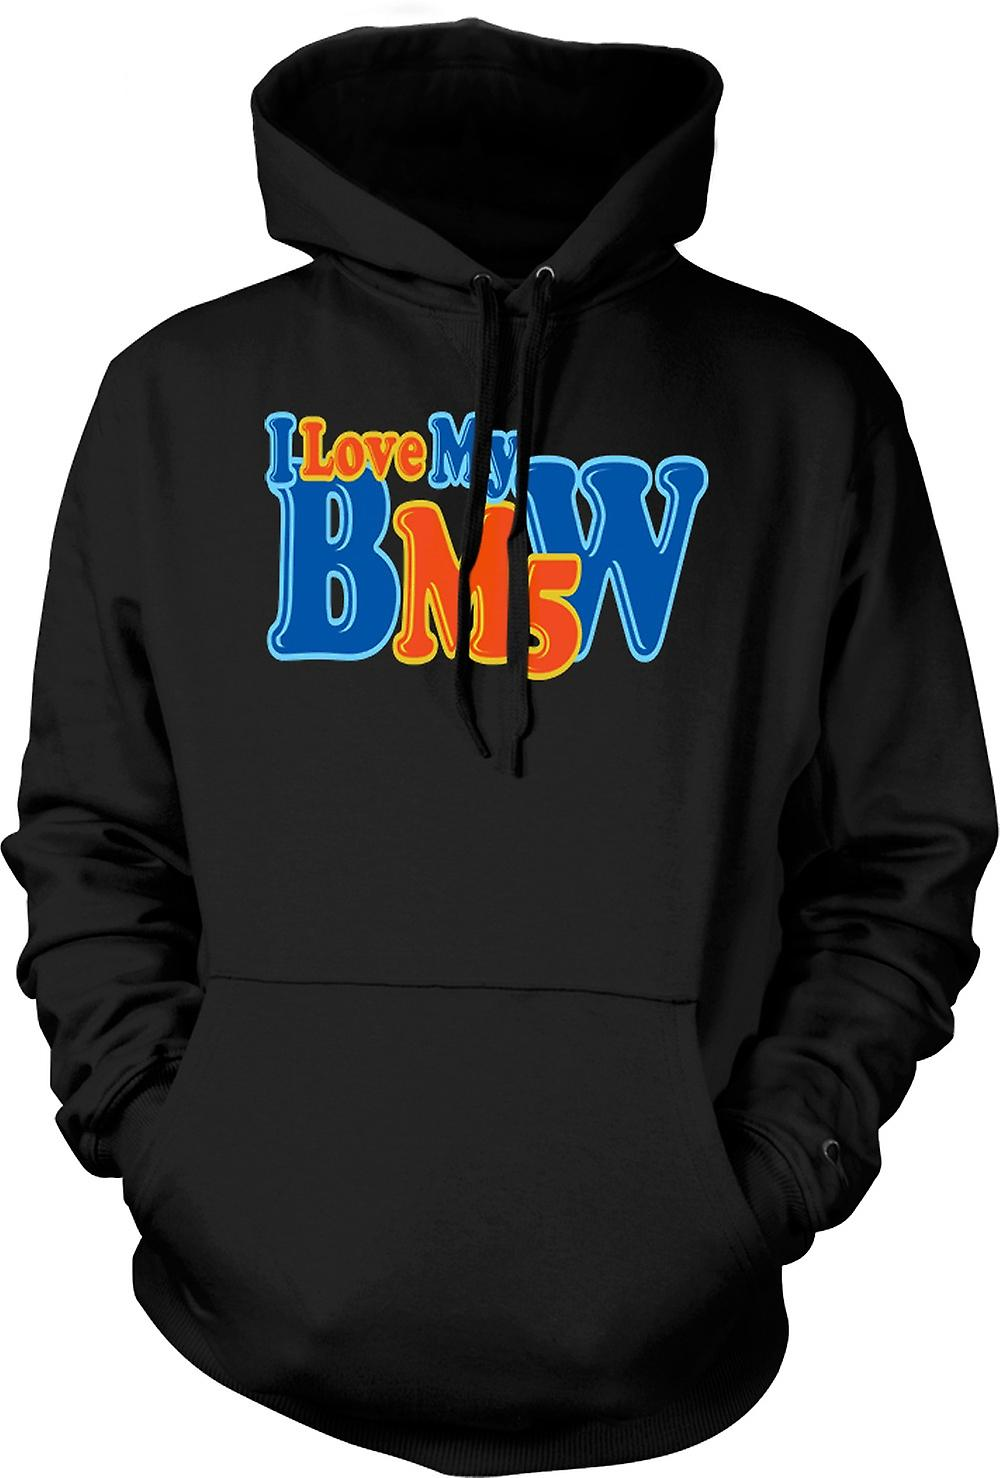 Mens Hoodie - I Love My BMW M5 - Car Enthusiast